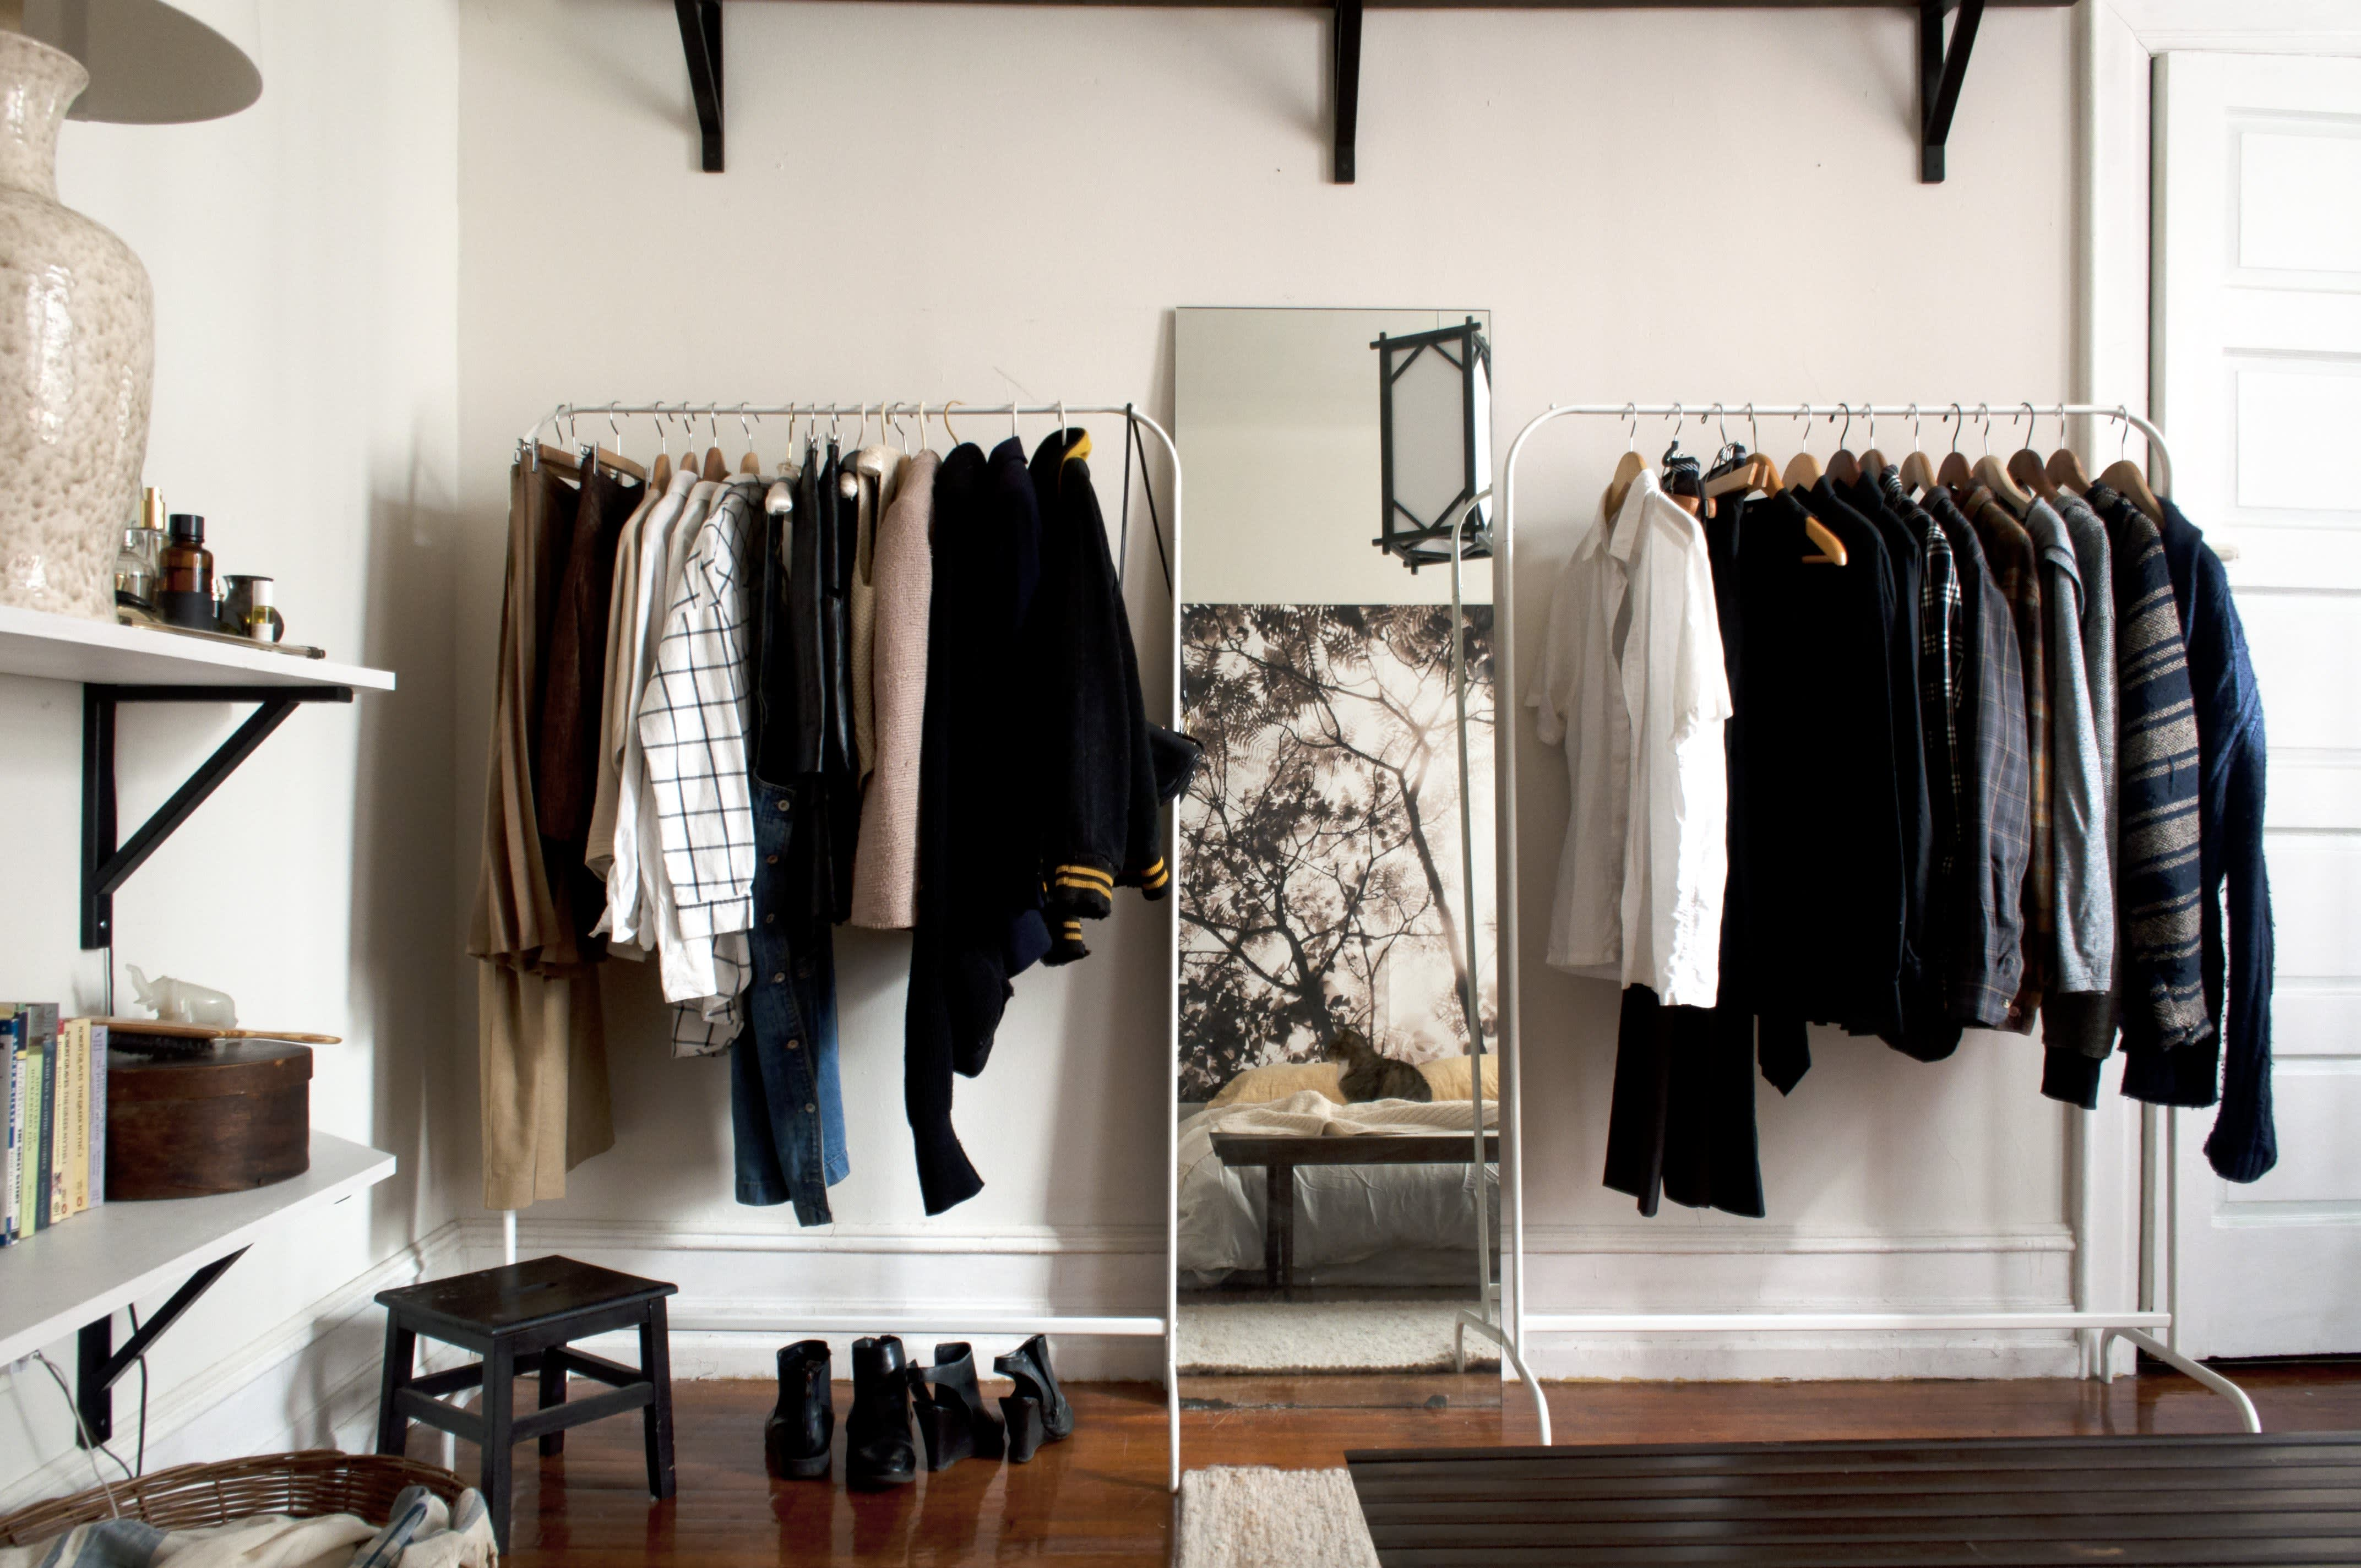 bd8dc596c2 What to Toss From Your Closet - Closet Clean Out Ideas